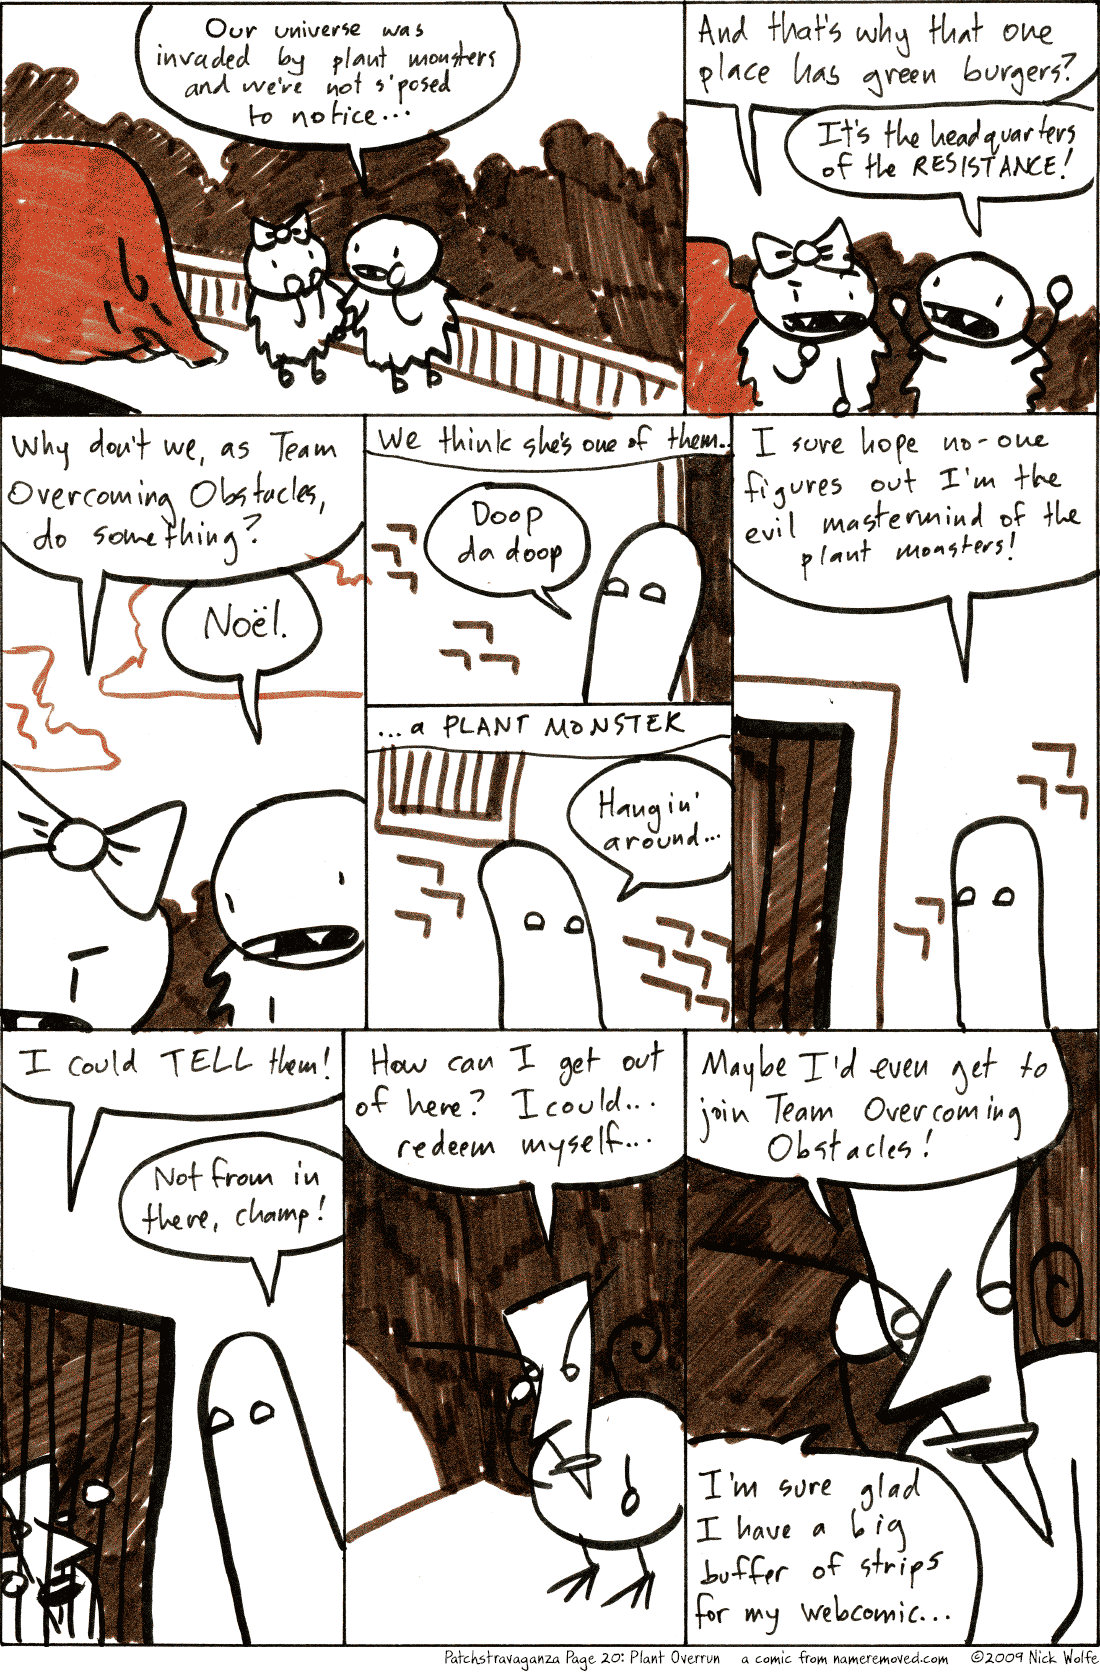 Patchstravaganza Page 20: Plant Overrun